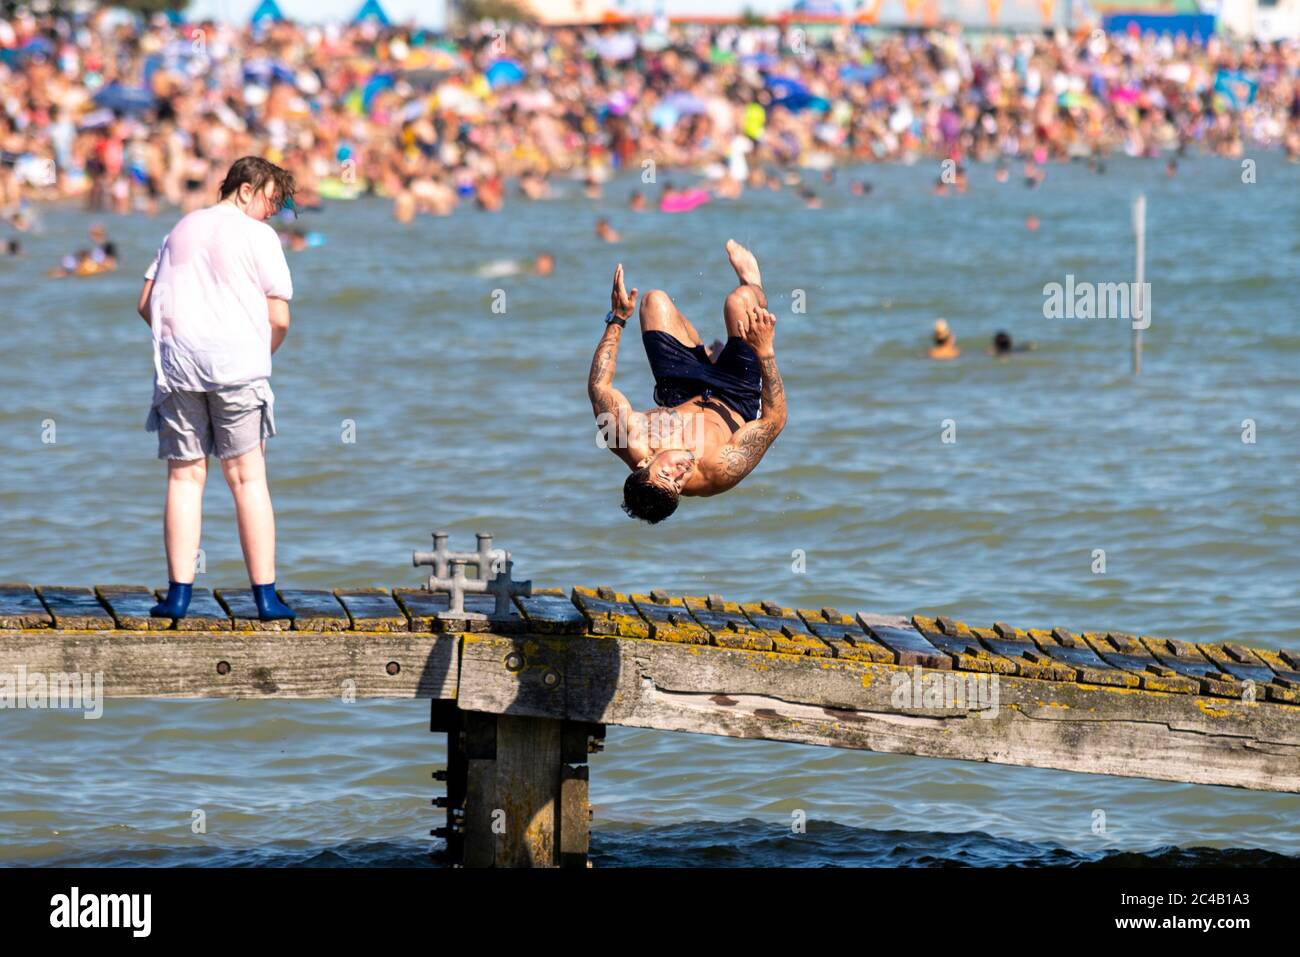 male-diving-into-sea-flipping-despite-the-covid-19-coronavirus-lockdown-crowds-of-people-have-travelled-to-the-beaches-of-southend-on-sea-essex-uk-2C4B1A3.jpg